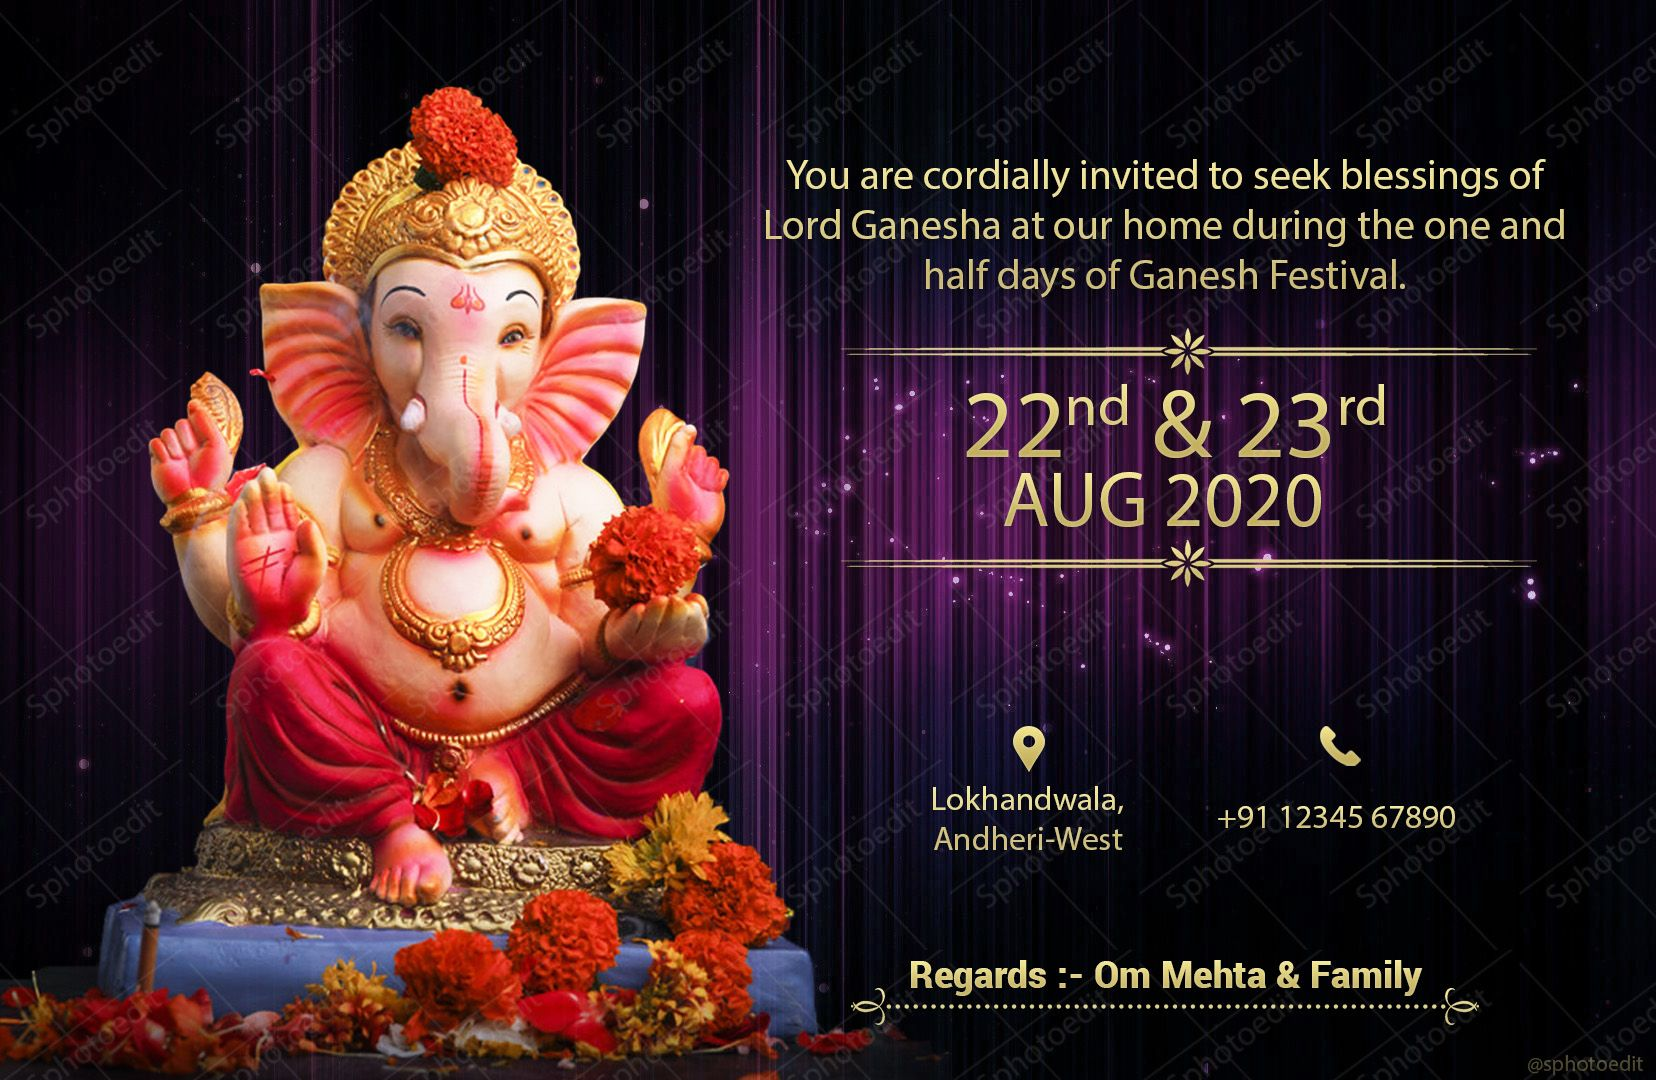 Rs.149 only for Ganesh Chaturthi invitation card 2020 ...